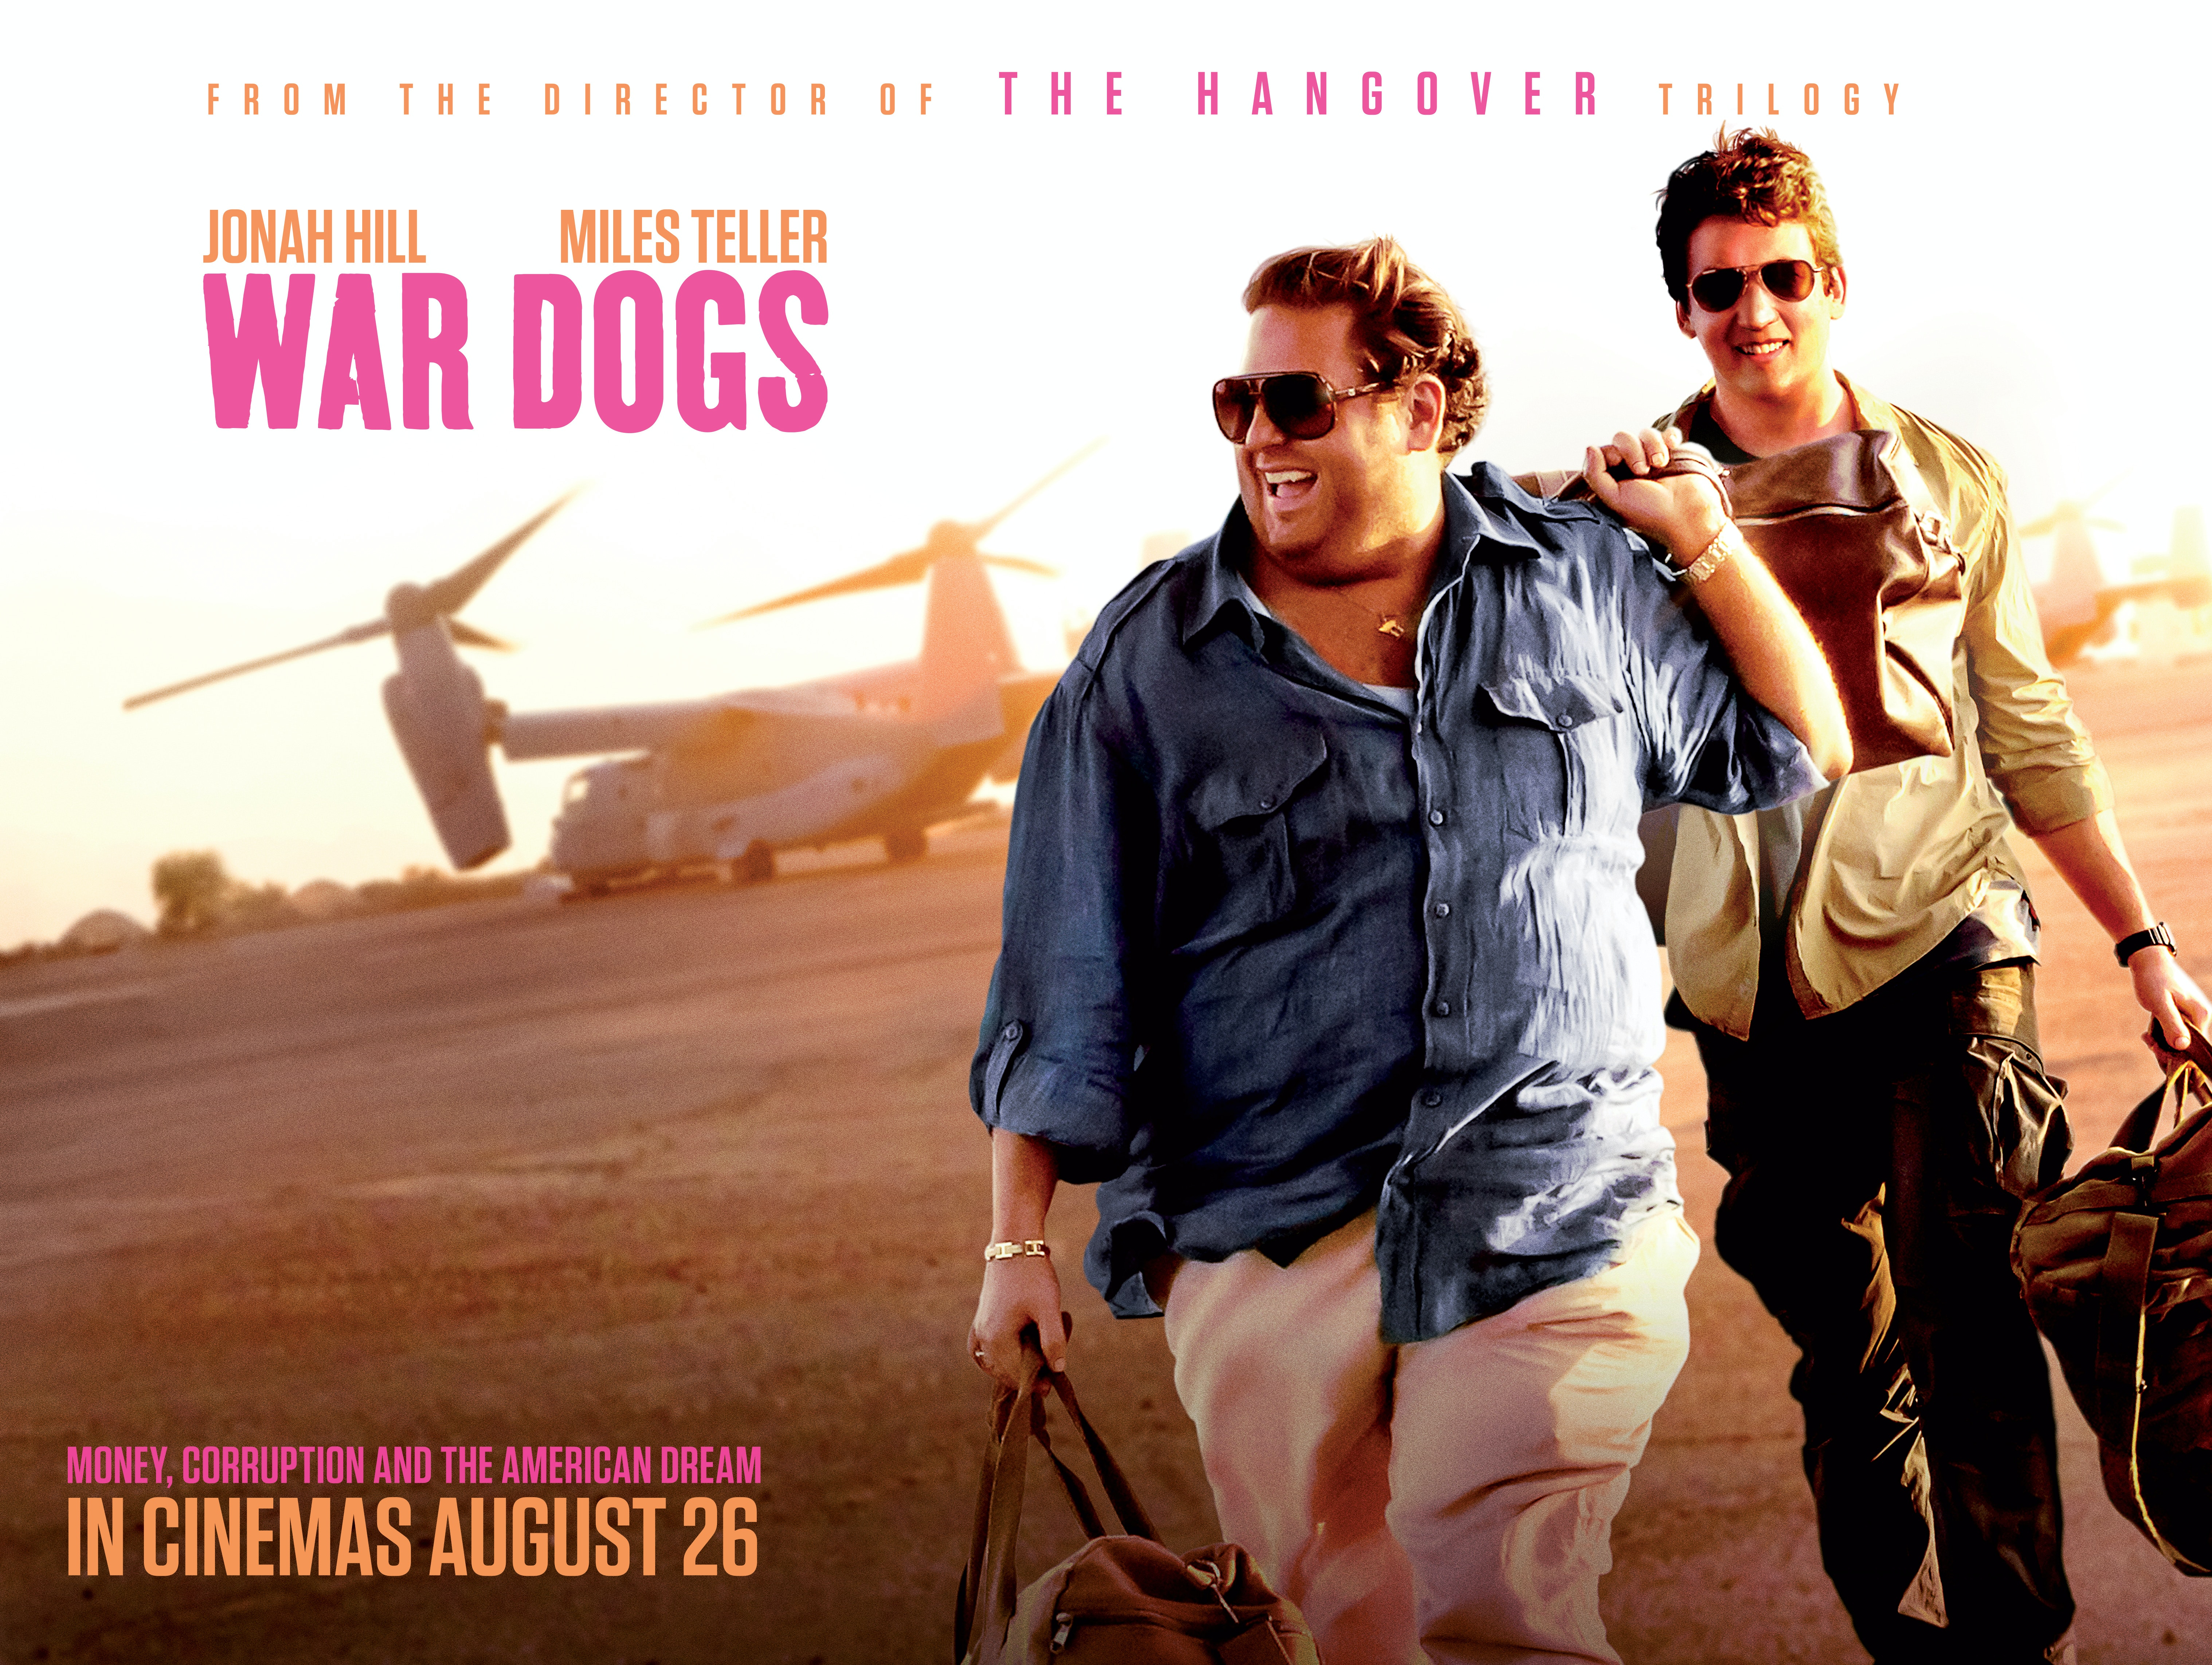 WAR DOGS  sweepstakes